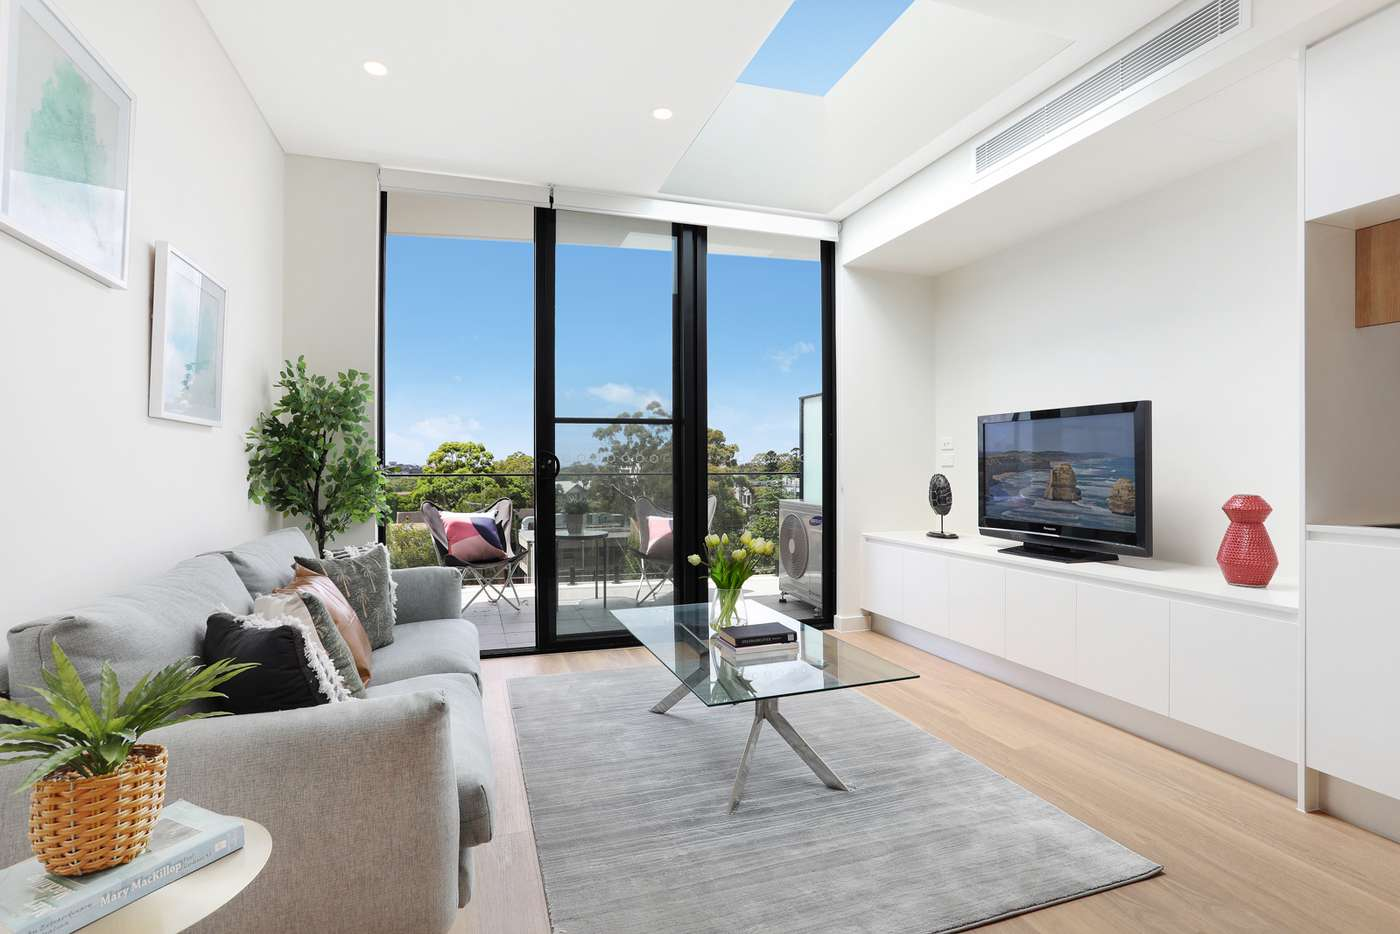 Main view of Homely apartment listing, 706/2 Murrell Street, Ashfield NSW 2131